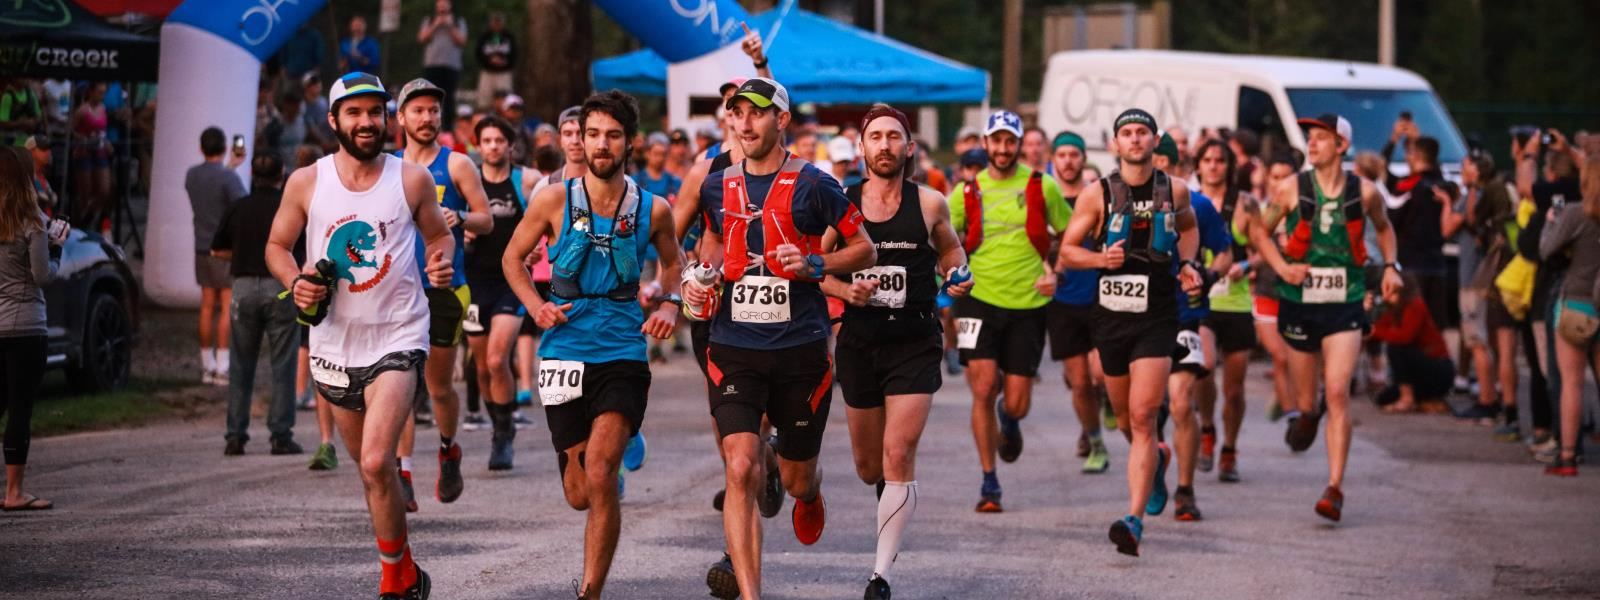 UltraSignup - Races, Registration and Results